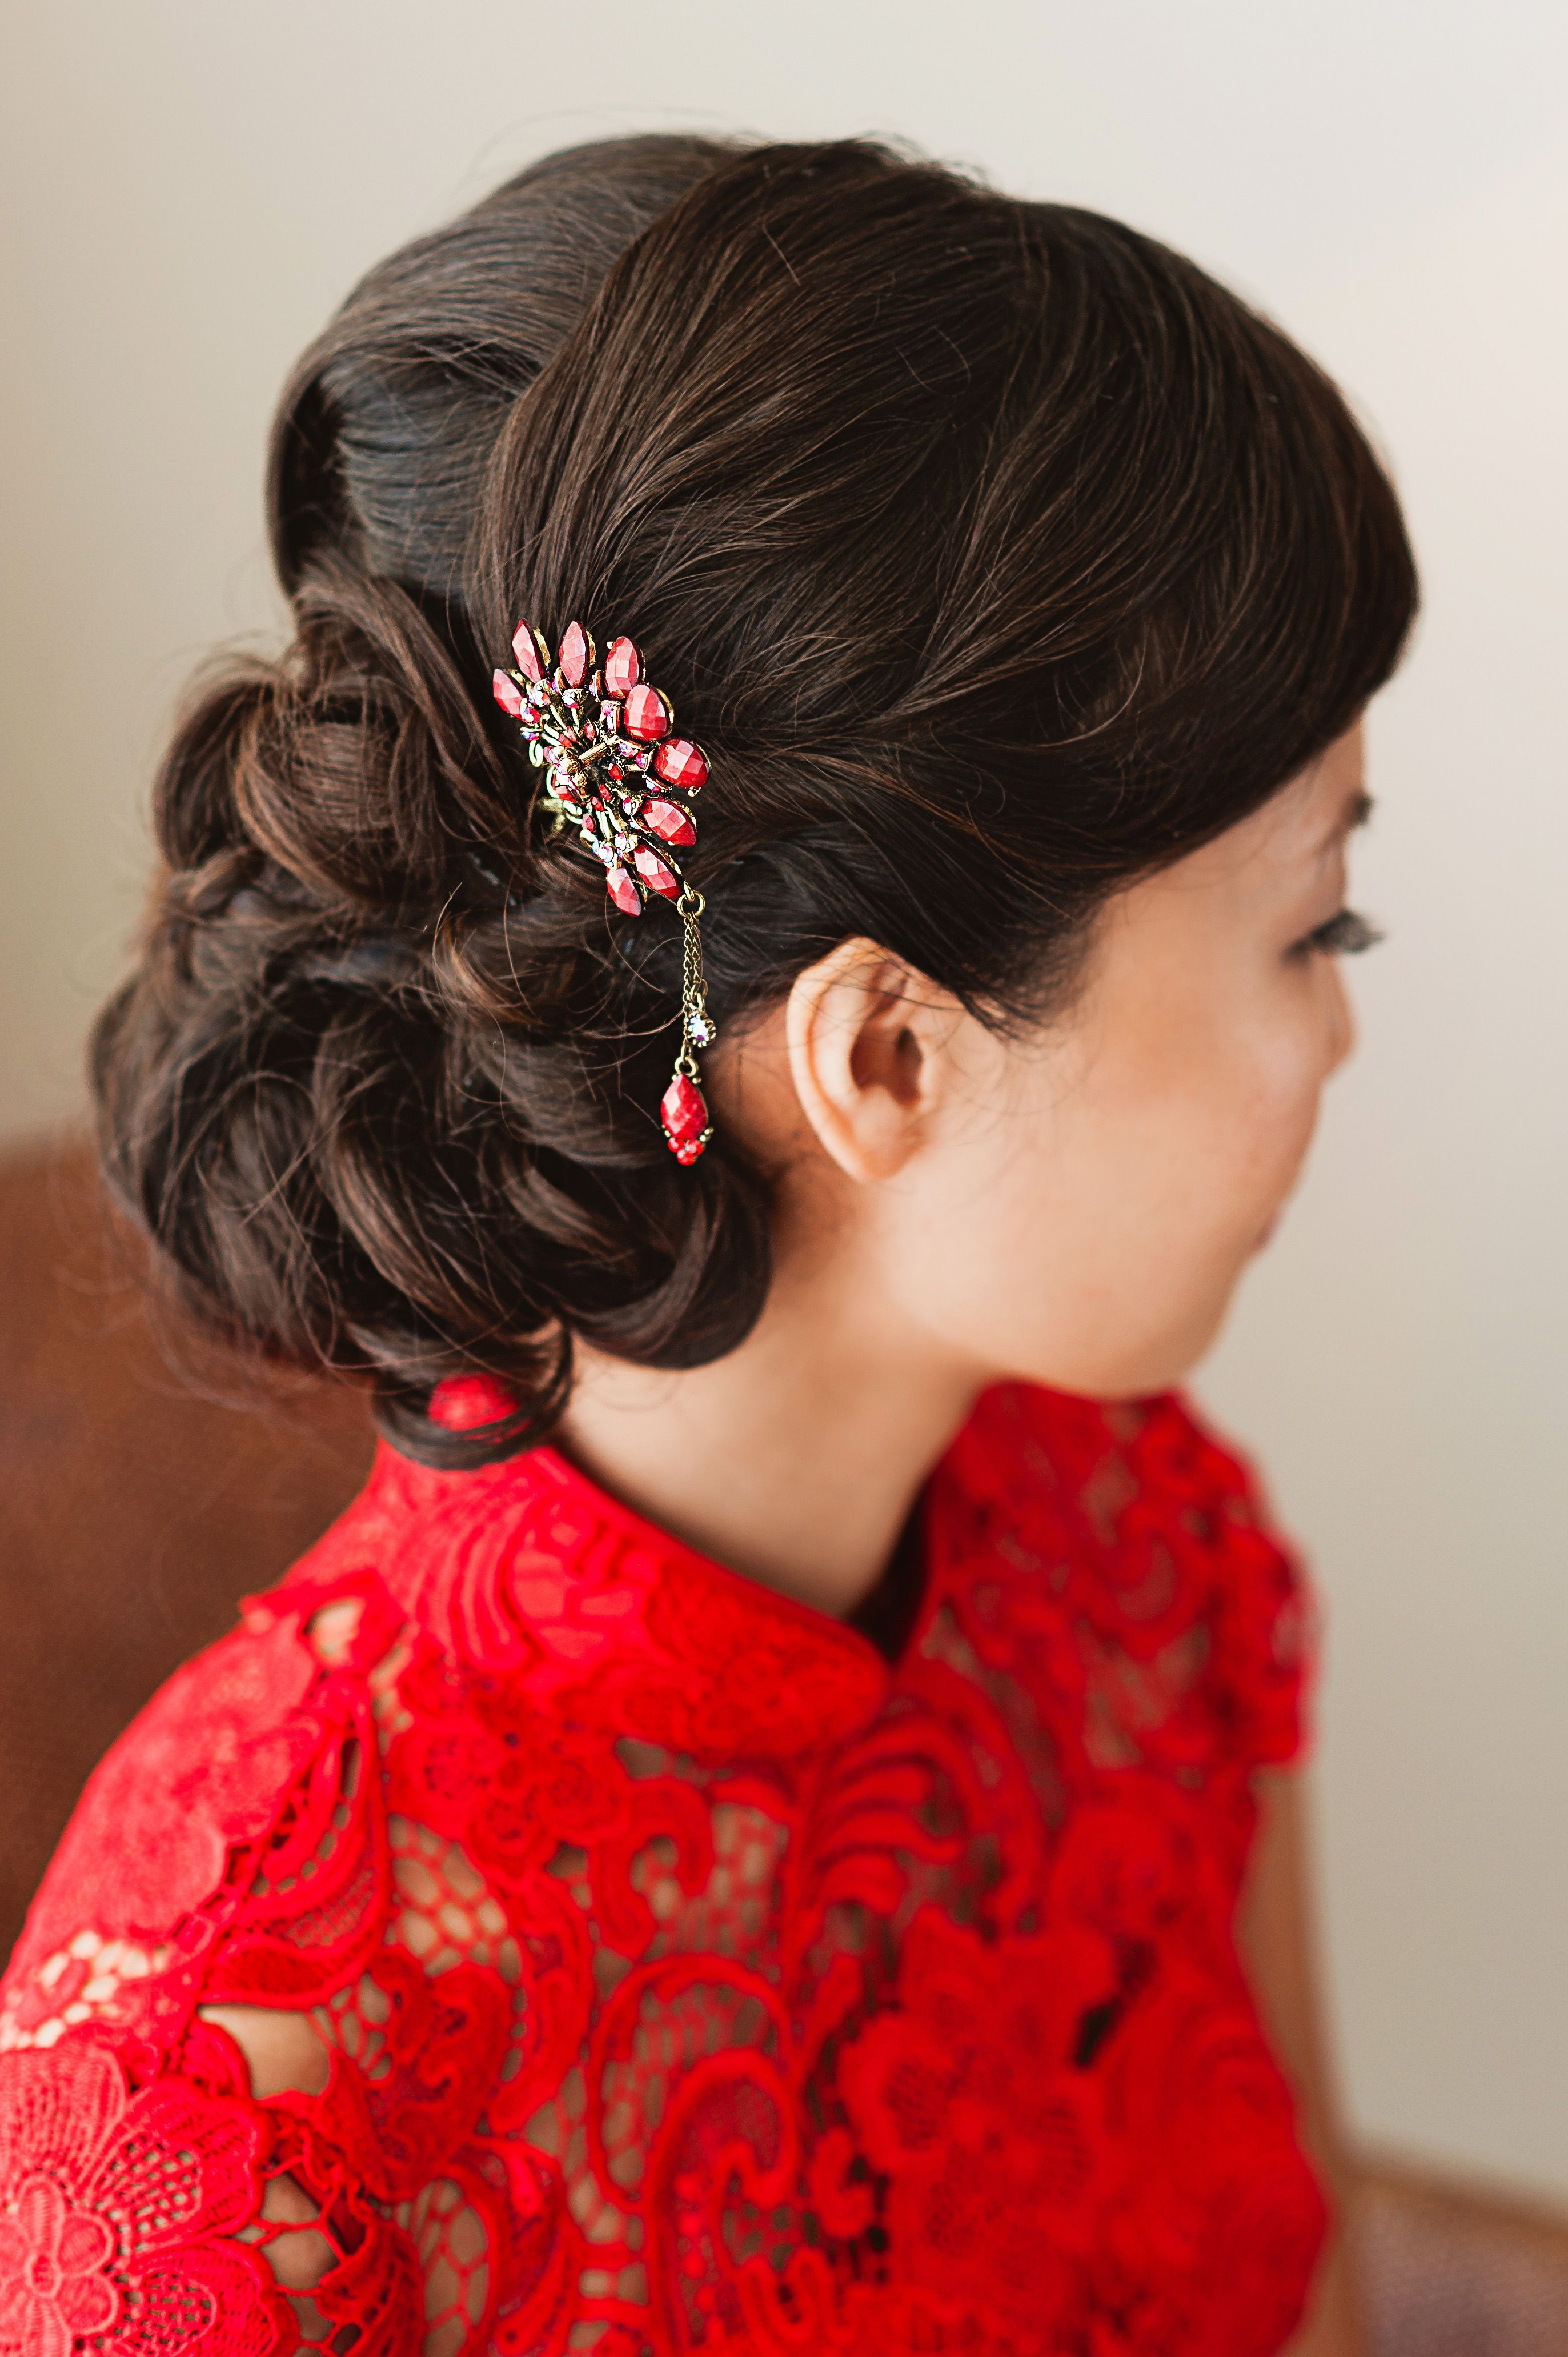 qipao hairstyle - google search | simple hairstyles in 2019